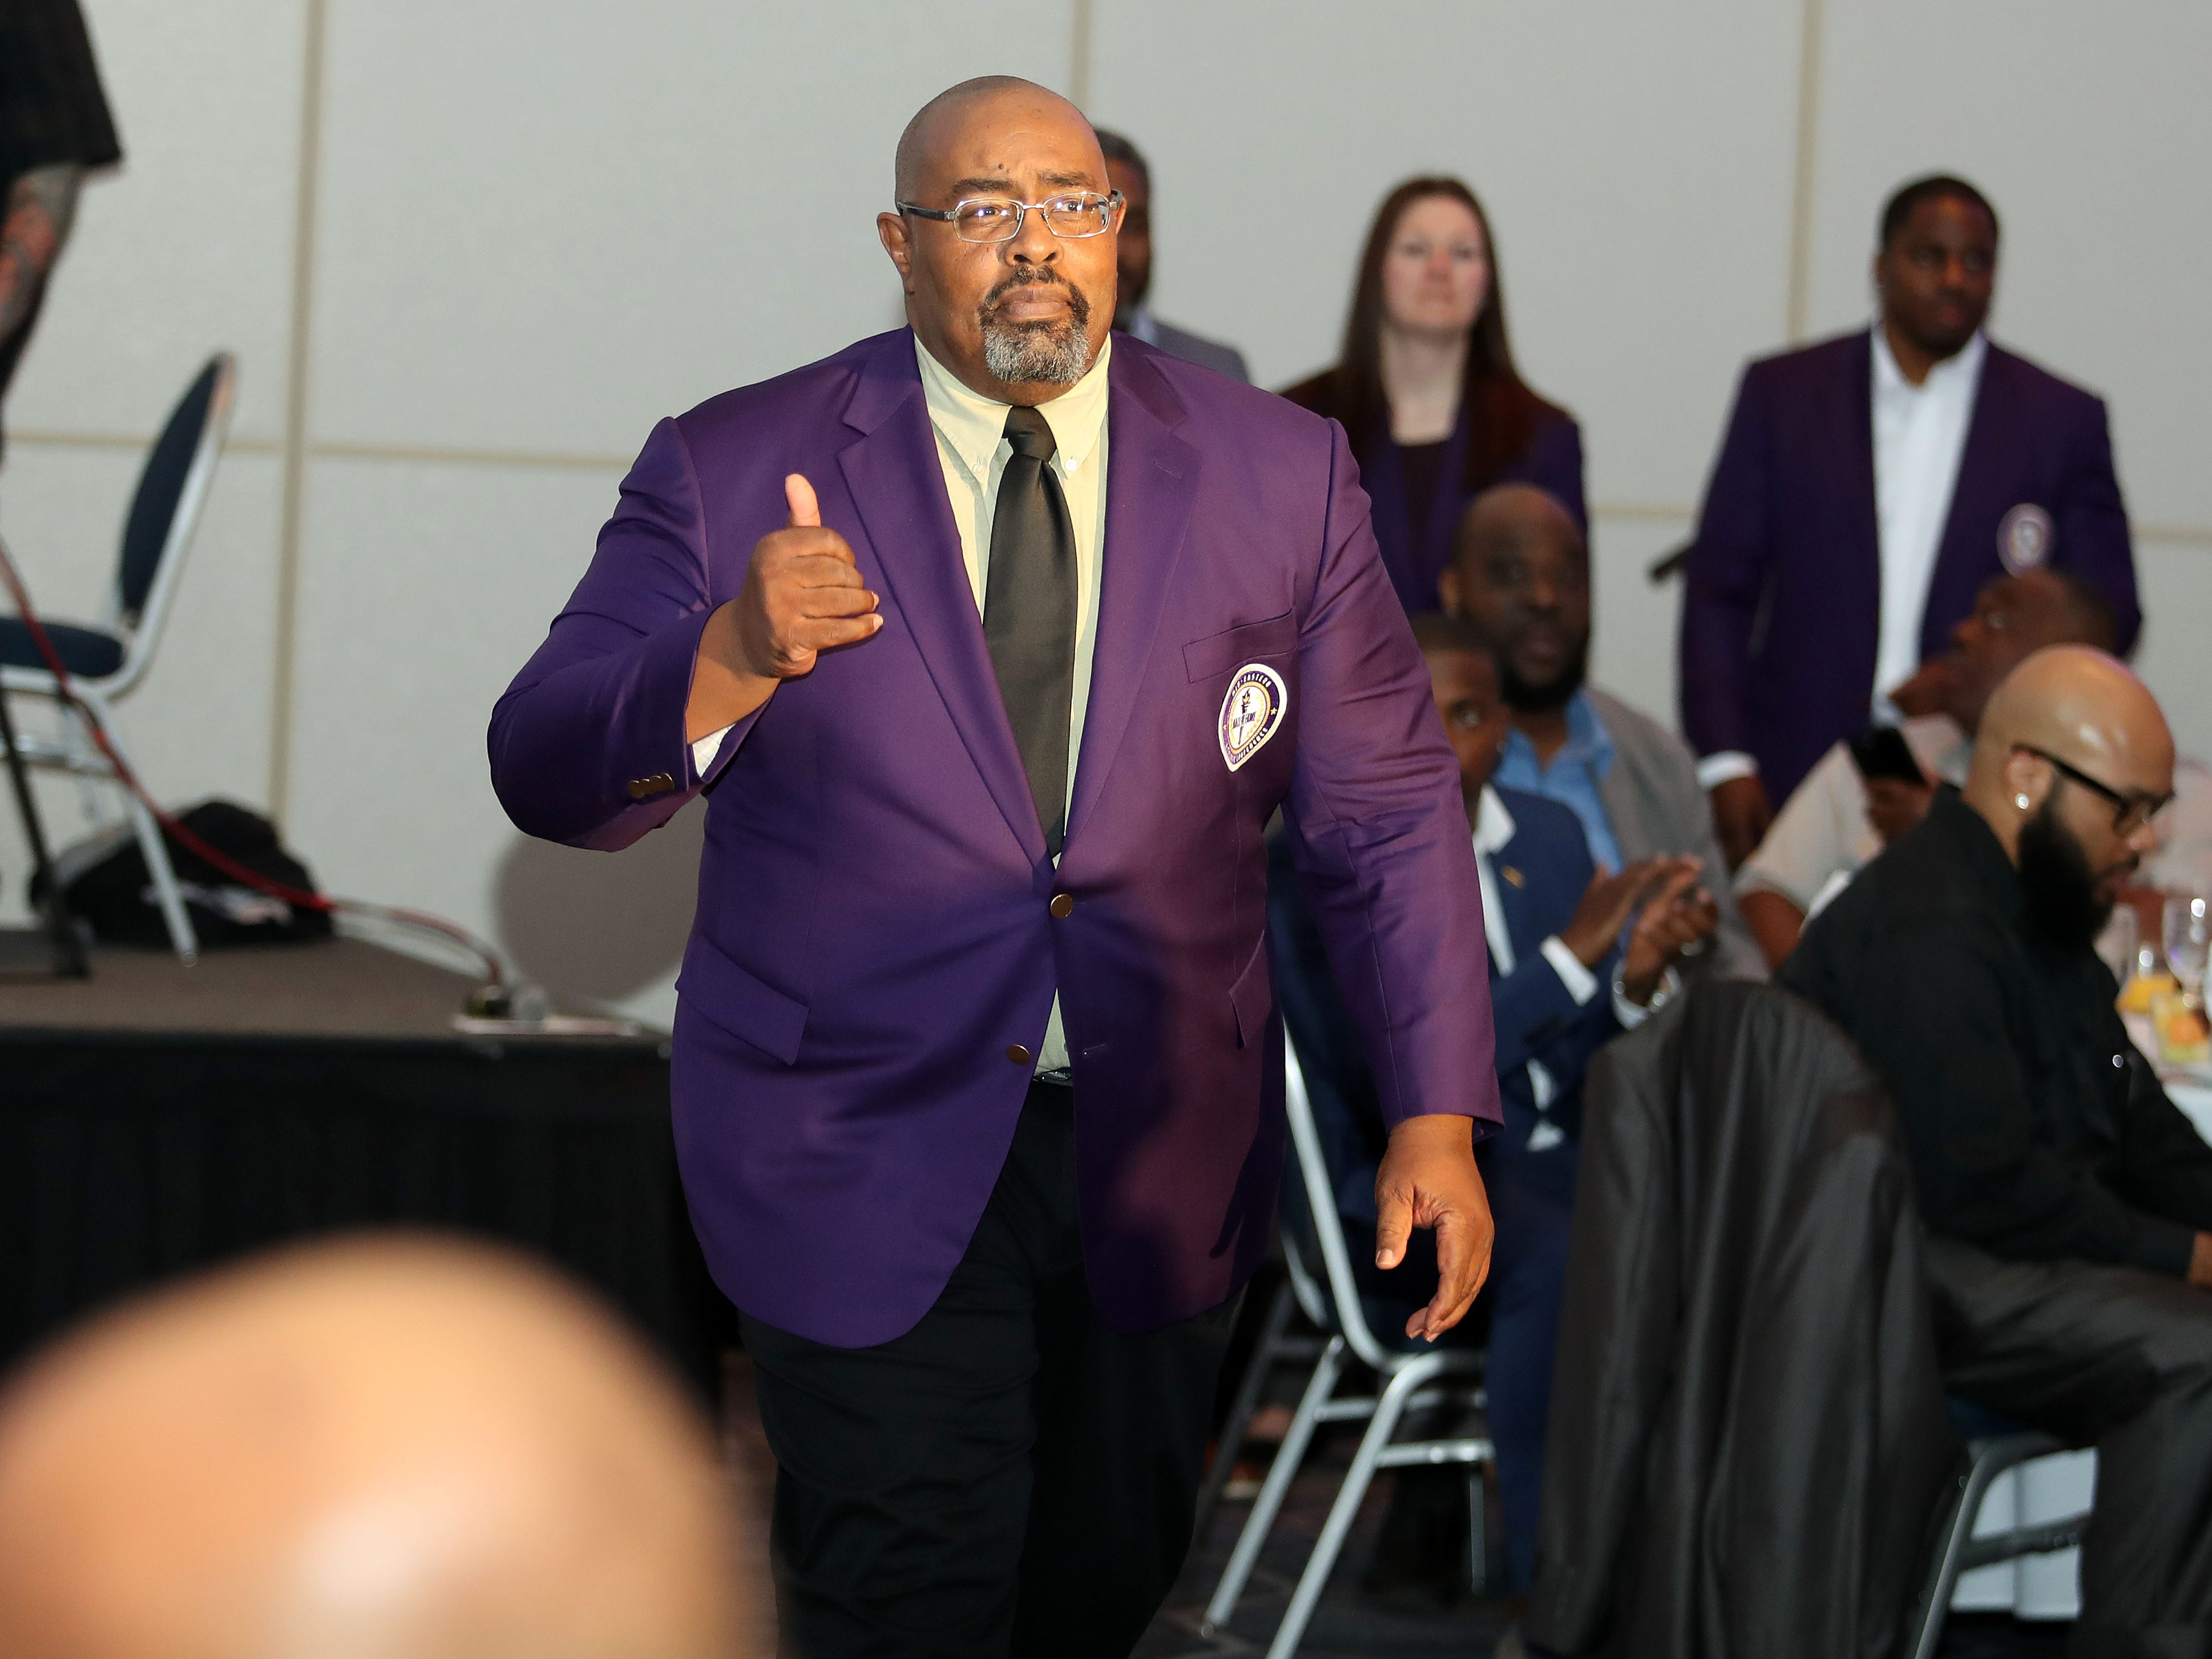 FAMU sports administrator Alvin Hollins was enshrined in the MEAC Hall of Fame on Wednesday, March 14, 2019 at the Sheraton Norfolk Waterside Hotel in Norfolk, Virginia.